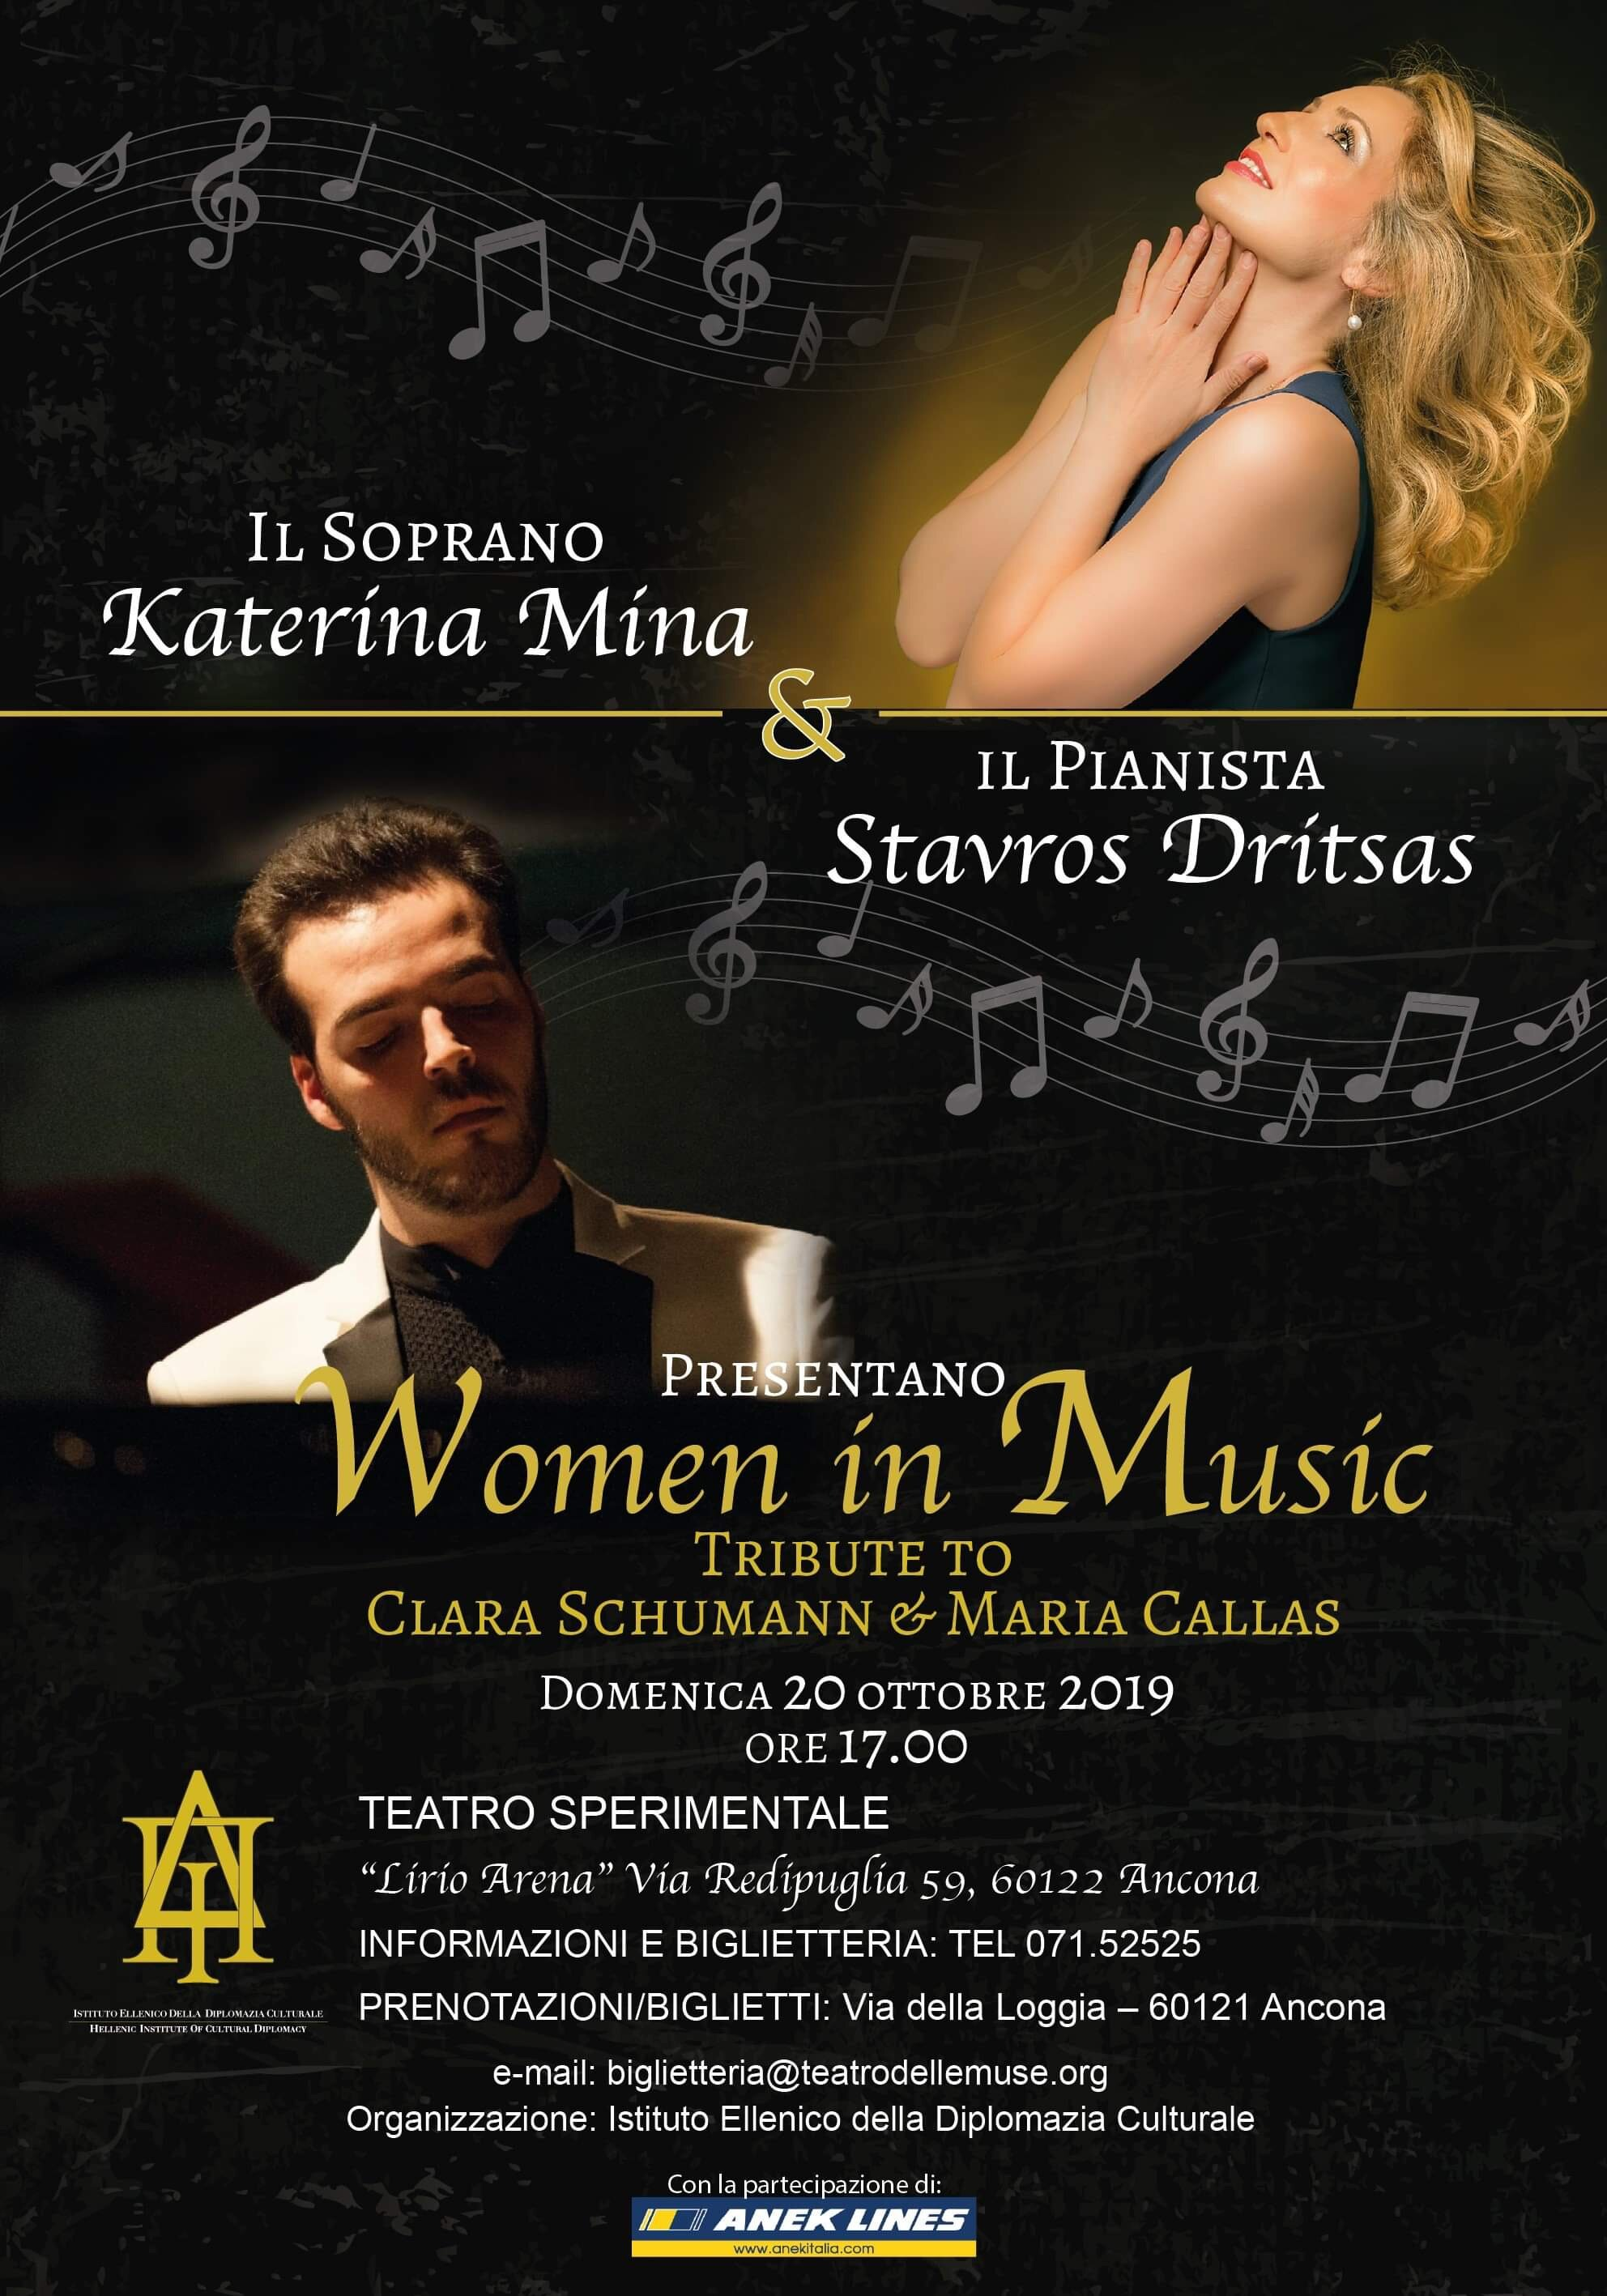 Women in Music, Singing Recital, 20 October 2019 - What a joy to be paying tribute to two incredible power women of classical music, Clara Schumann and Maria Callas!Katerina is very happy to be performing again with terrific concert pianist Stavros Dritsas, a programme to celebrate 200 years from Clara Schumann's birth with some of her most beautiful lieder, as well as Maria Callas's life with operatic arias and piano transcriptions closely related to the repertoire performed by Callas.The concert is organised by the Hellenic Institute of Cultural Diplomacy in Italy and will take place at Teatro Sperimentale in Ancona on Sunday 20th October at 17:00. To read more and book your tickets, click the box below!